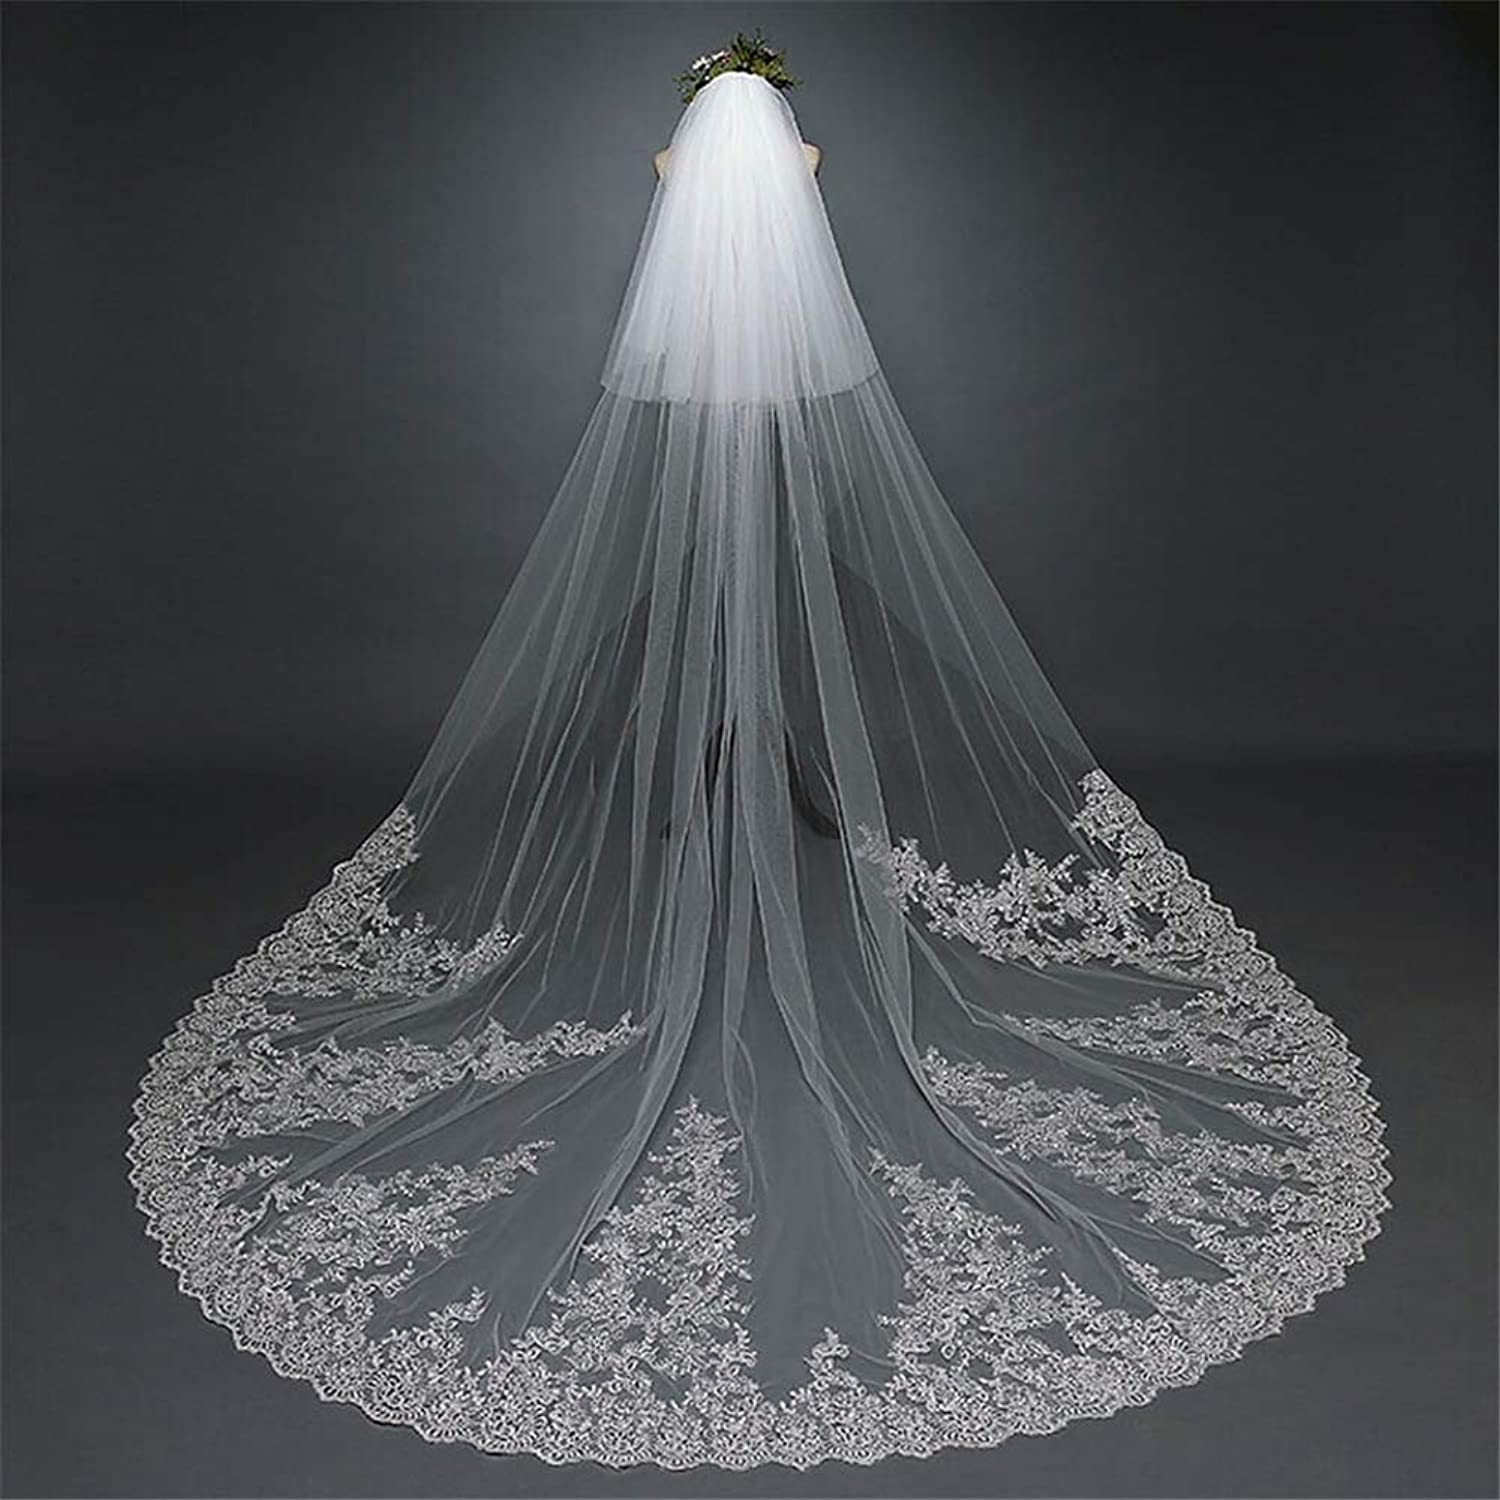 2T Two Tiers Bride Veils Vintage Style Flower Lace Applique Edge Long Cathedral Veils Bride Wedding Accessories with Comb